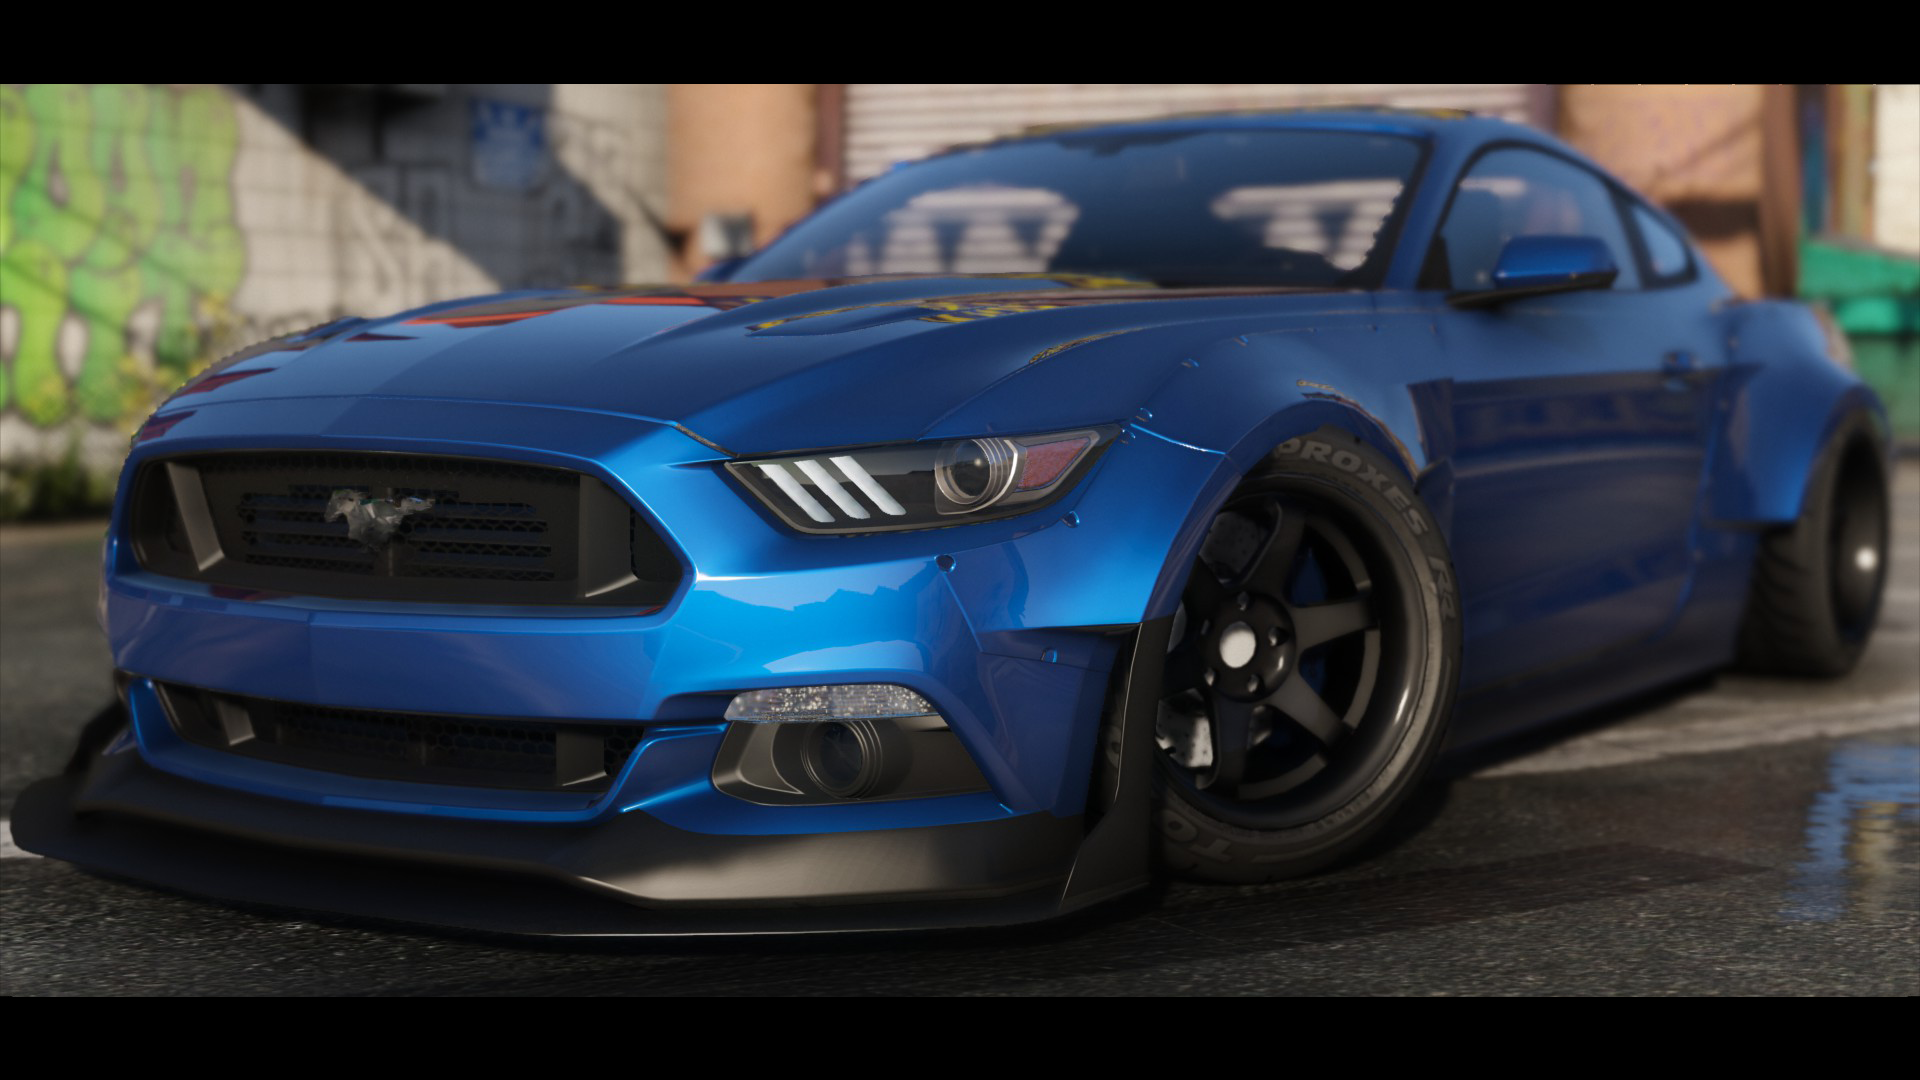 2015 ford mustang hq wbody kit shelbykit animated gta5 mods com